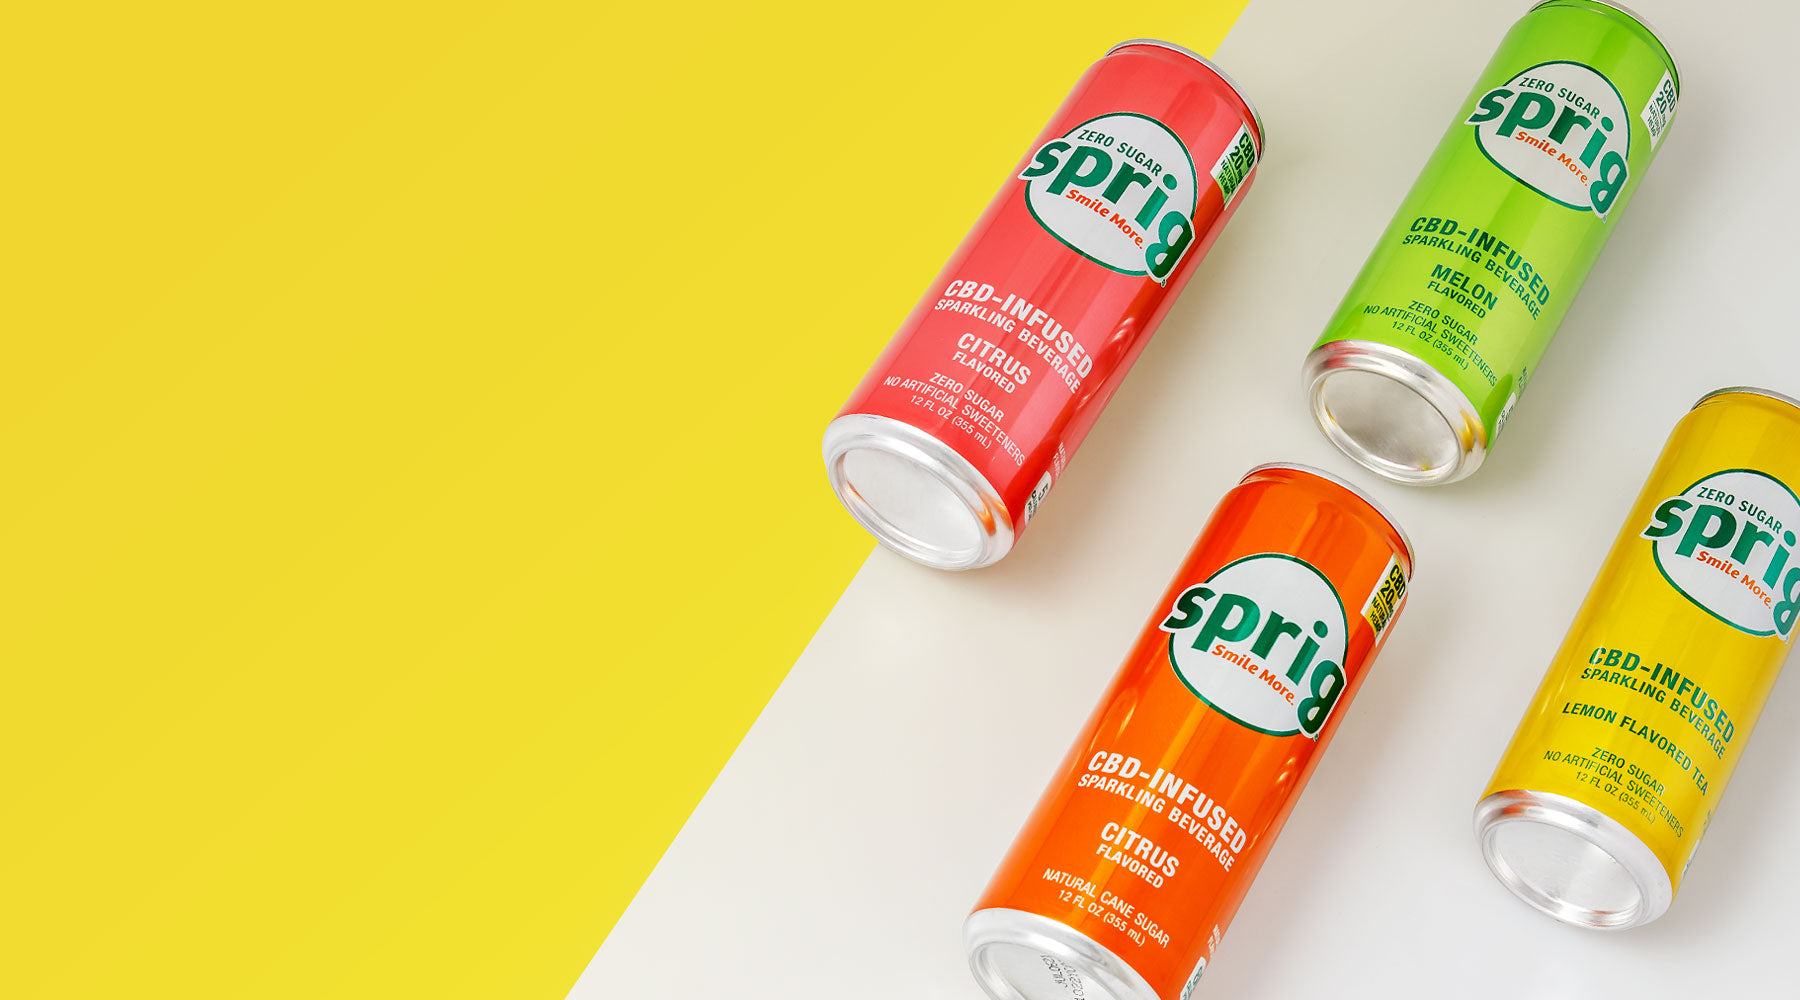 Sprig CBD Infused Drinks Beverages Sodas